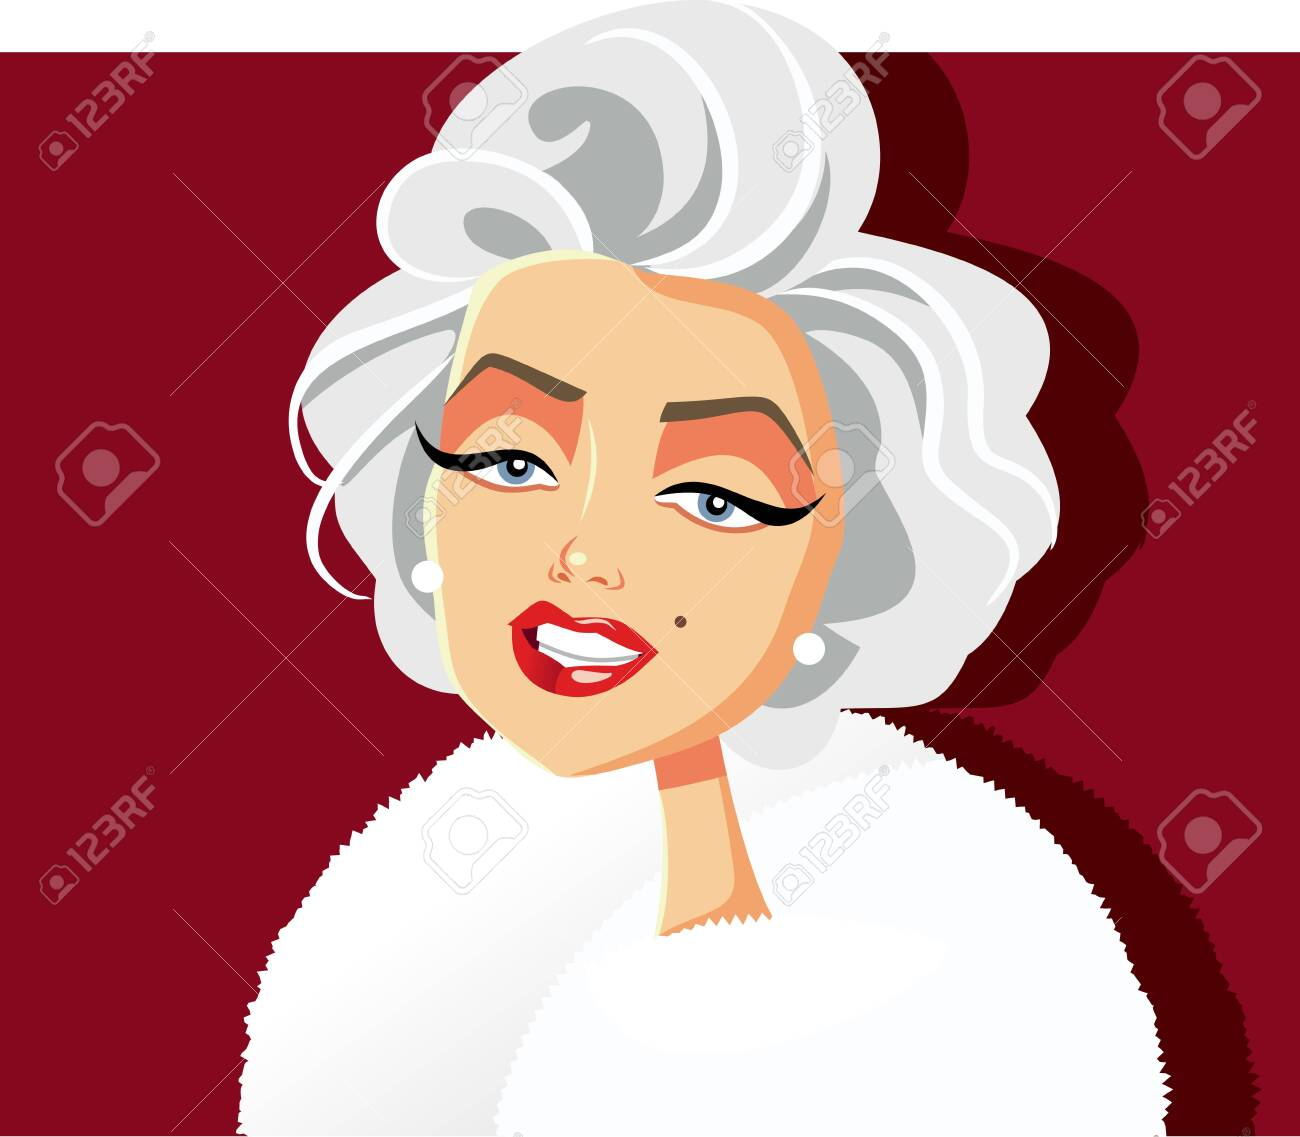 n y u s may 20 2019 marilyn monroe vector caricature stock photo picture and royalty free image image 128213670 n y u s may 20 2019 marilyn monroe vector caricature